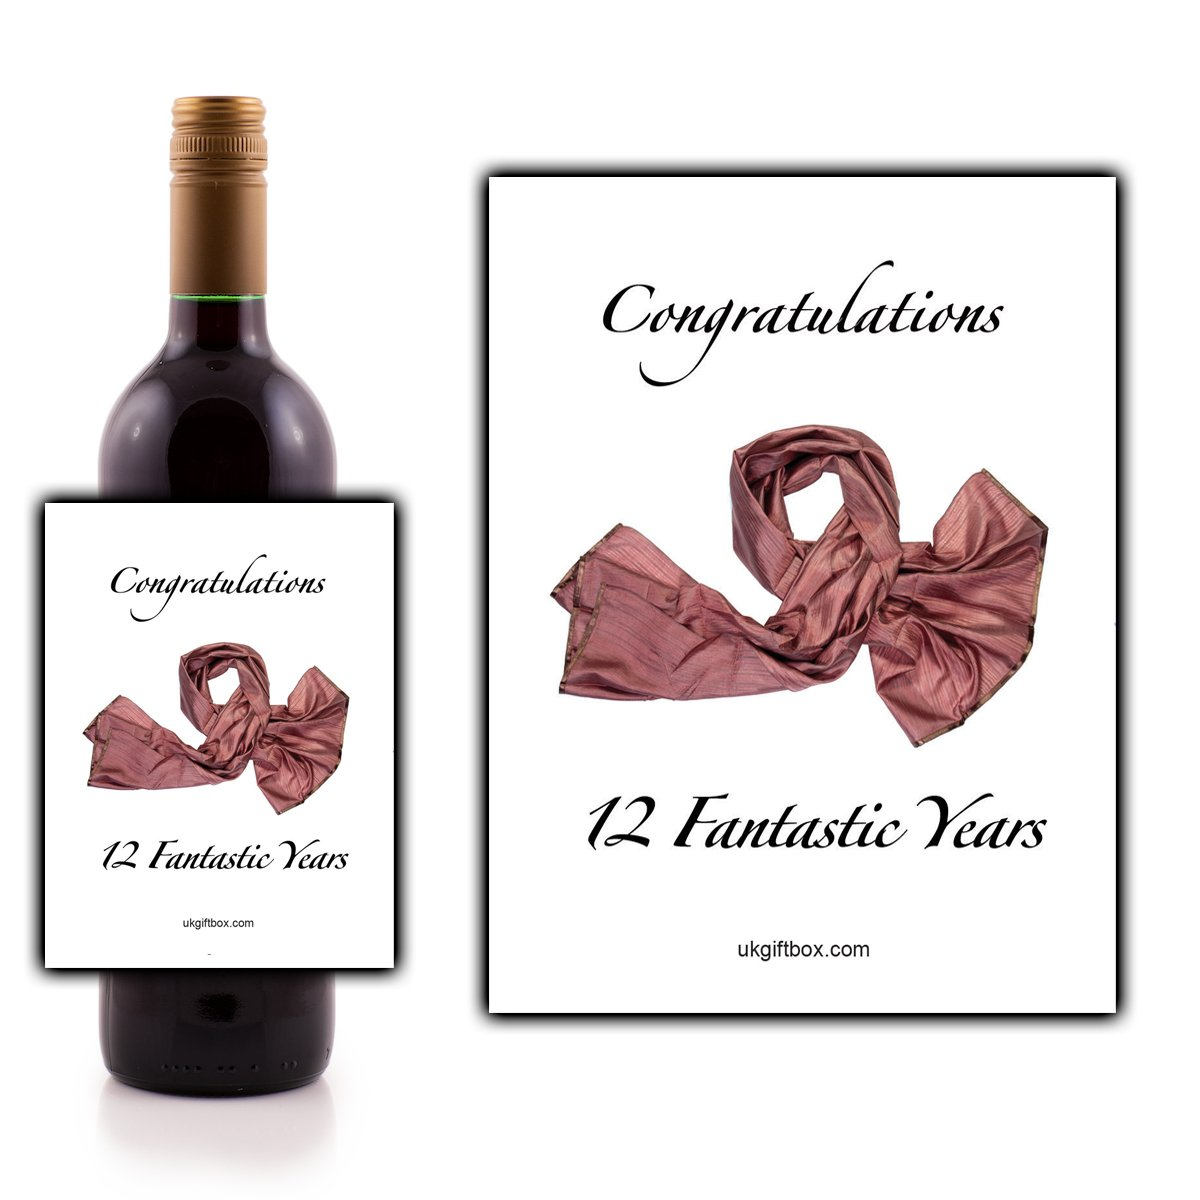 Congratulations 12 fantastic years Wine Bottle Label - perfect for adding that special touch to a 12th anniversary present ukgiftbox